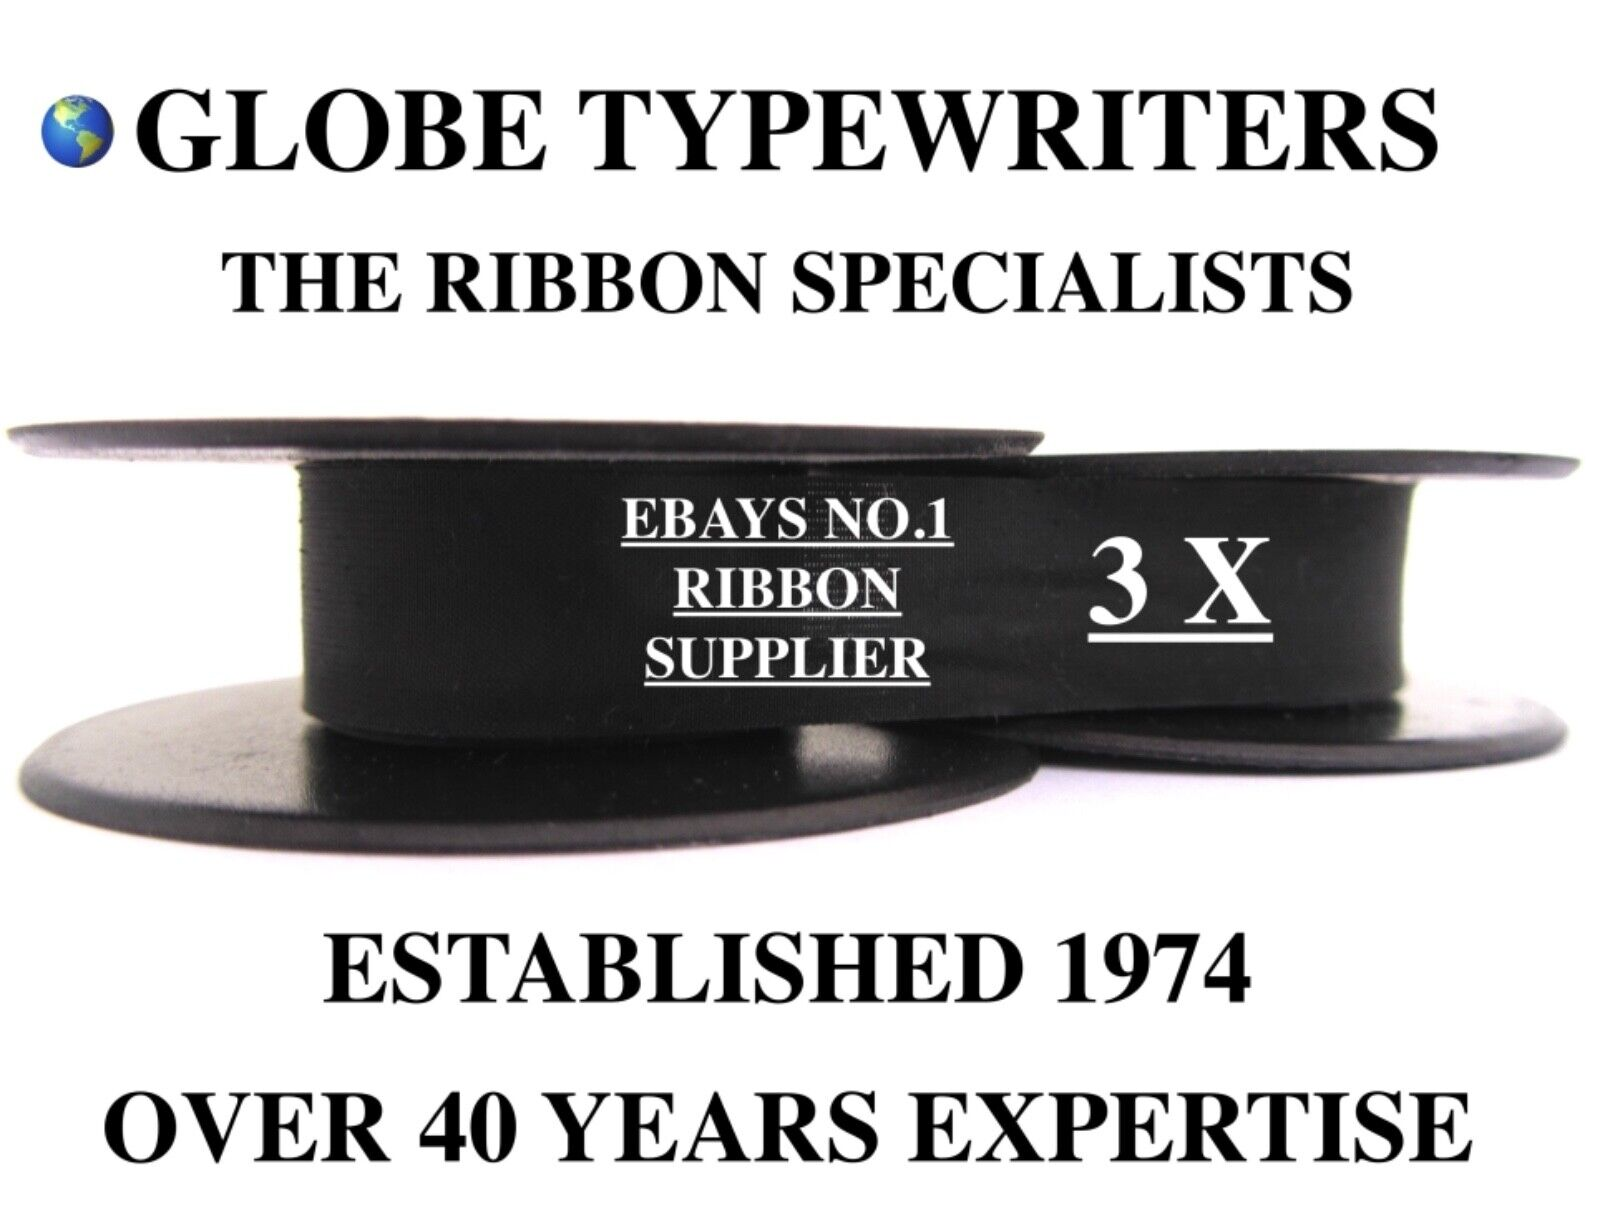 3 x 'IMPERIAL SIGNET' *BLACK* TOP QUALITY *10 METRE* (G1) TYPEWRITER RIBBONS